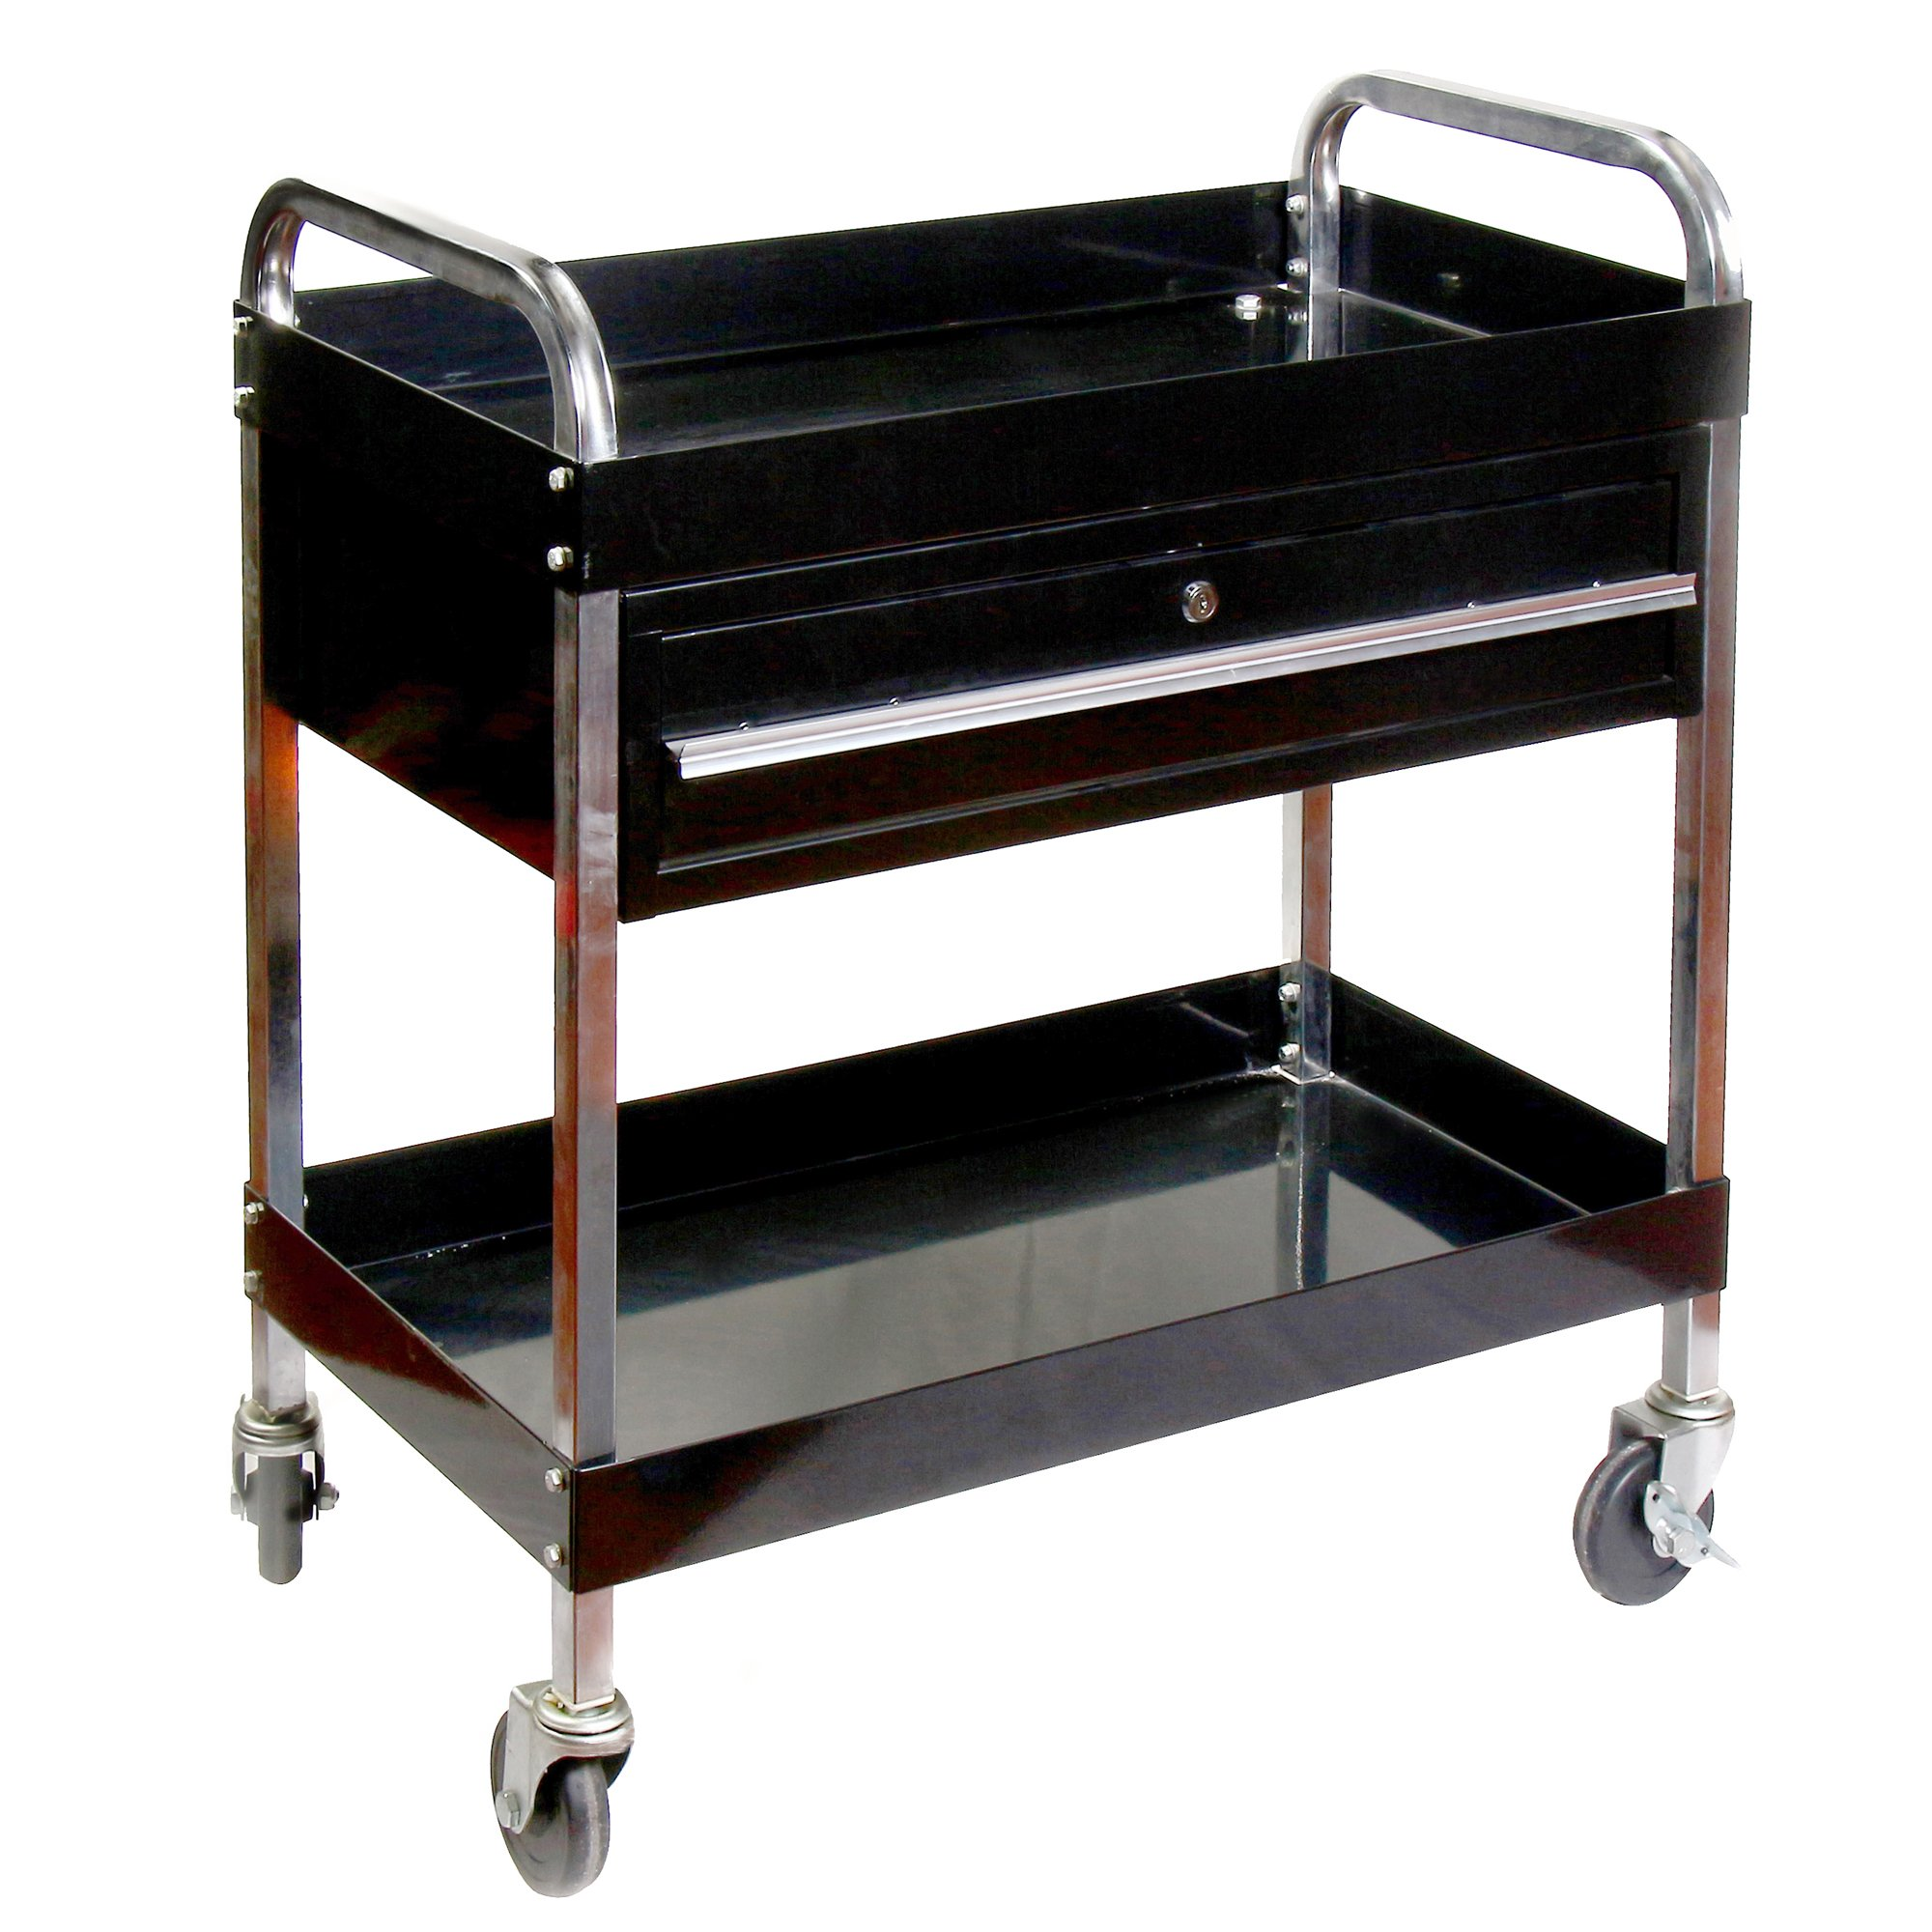 RTJ Service Cart Tool Cart with Locking Drawer 350 lbs Capacity, Jet Black by RTJ